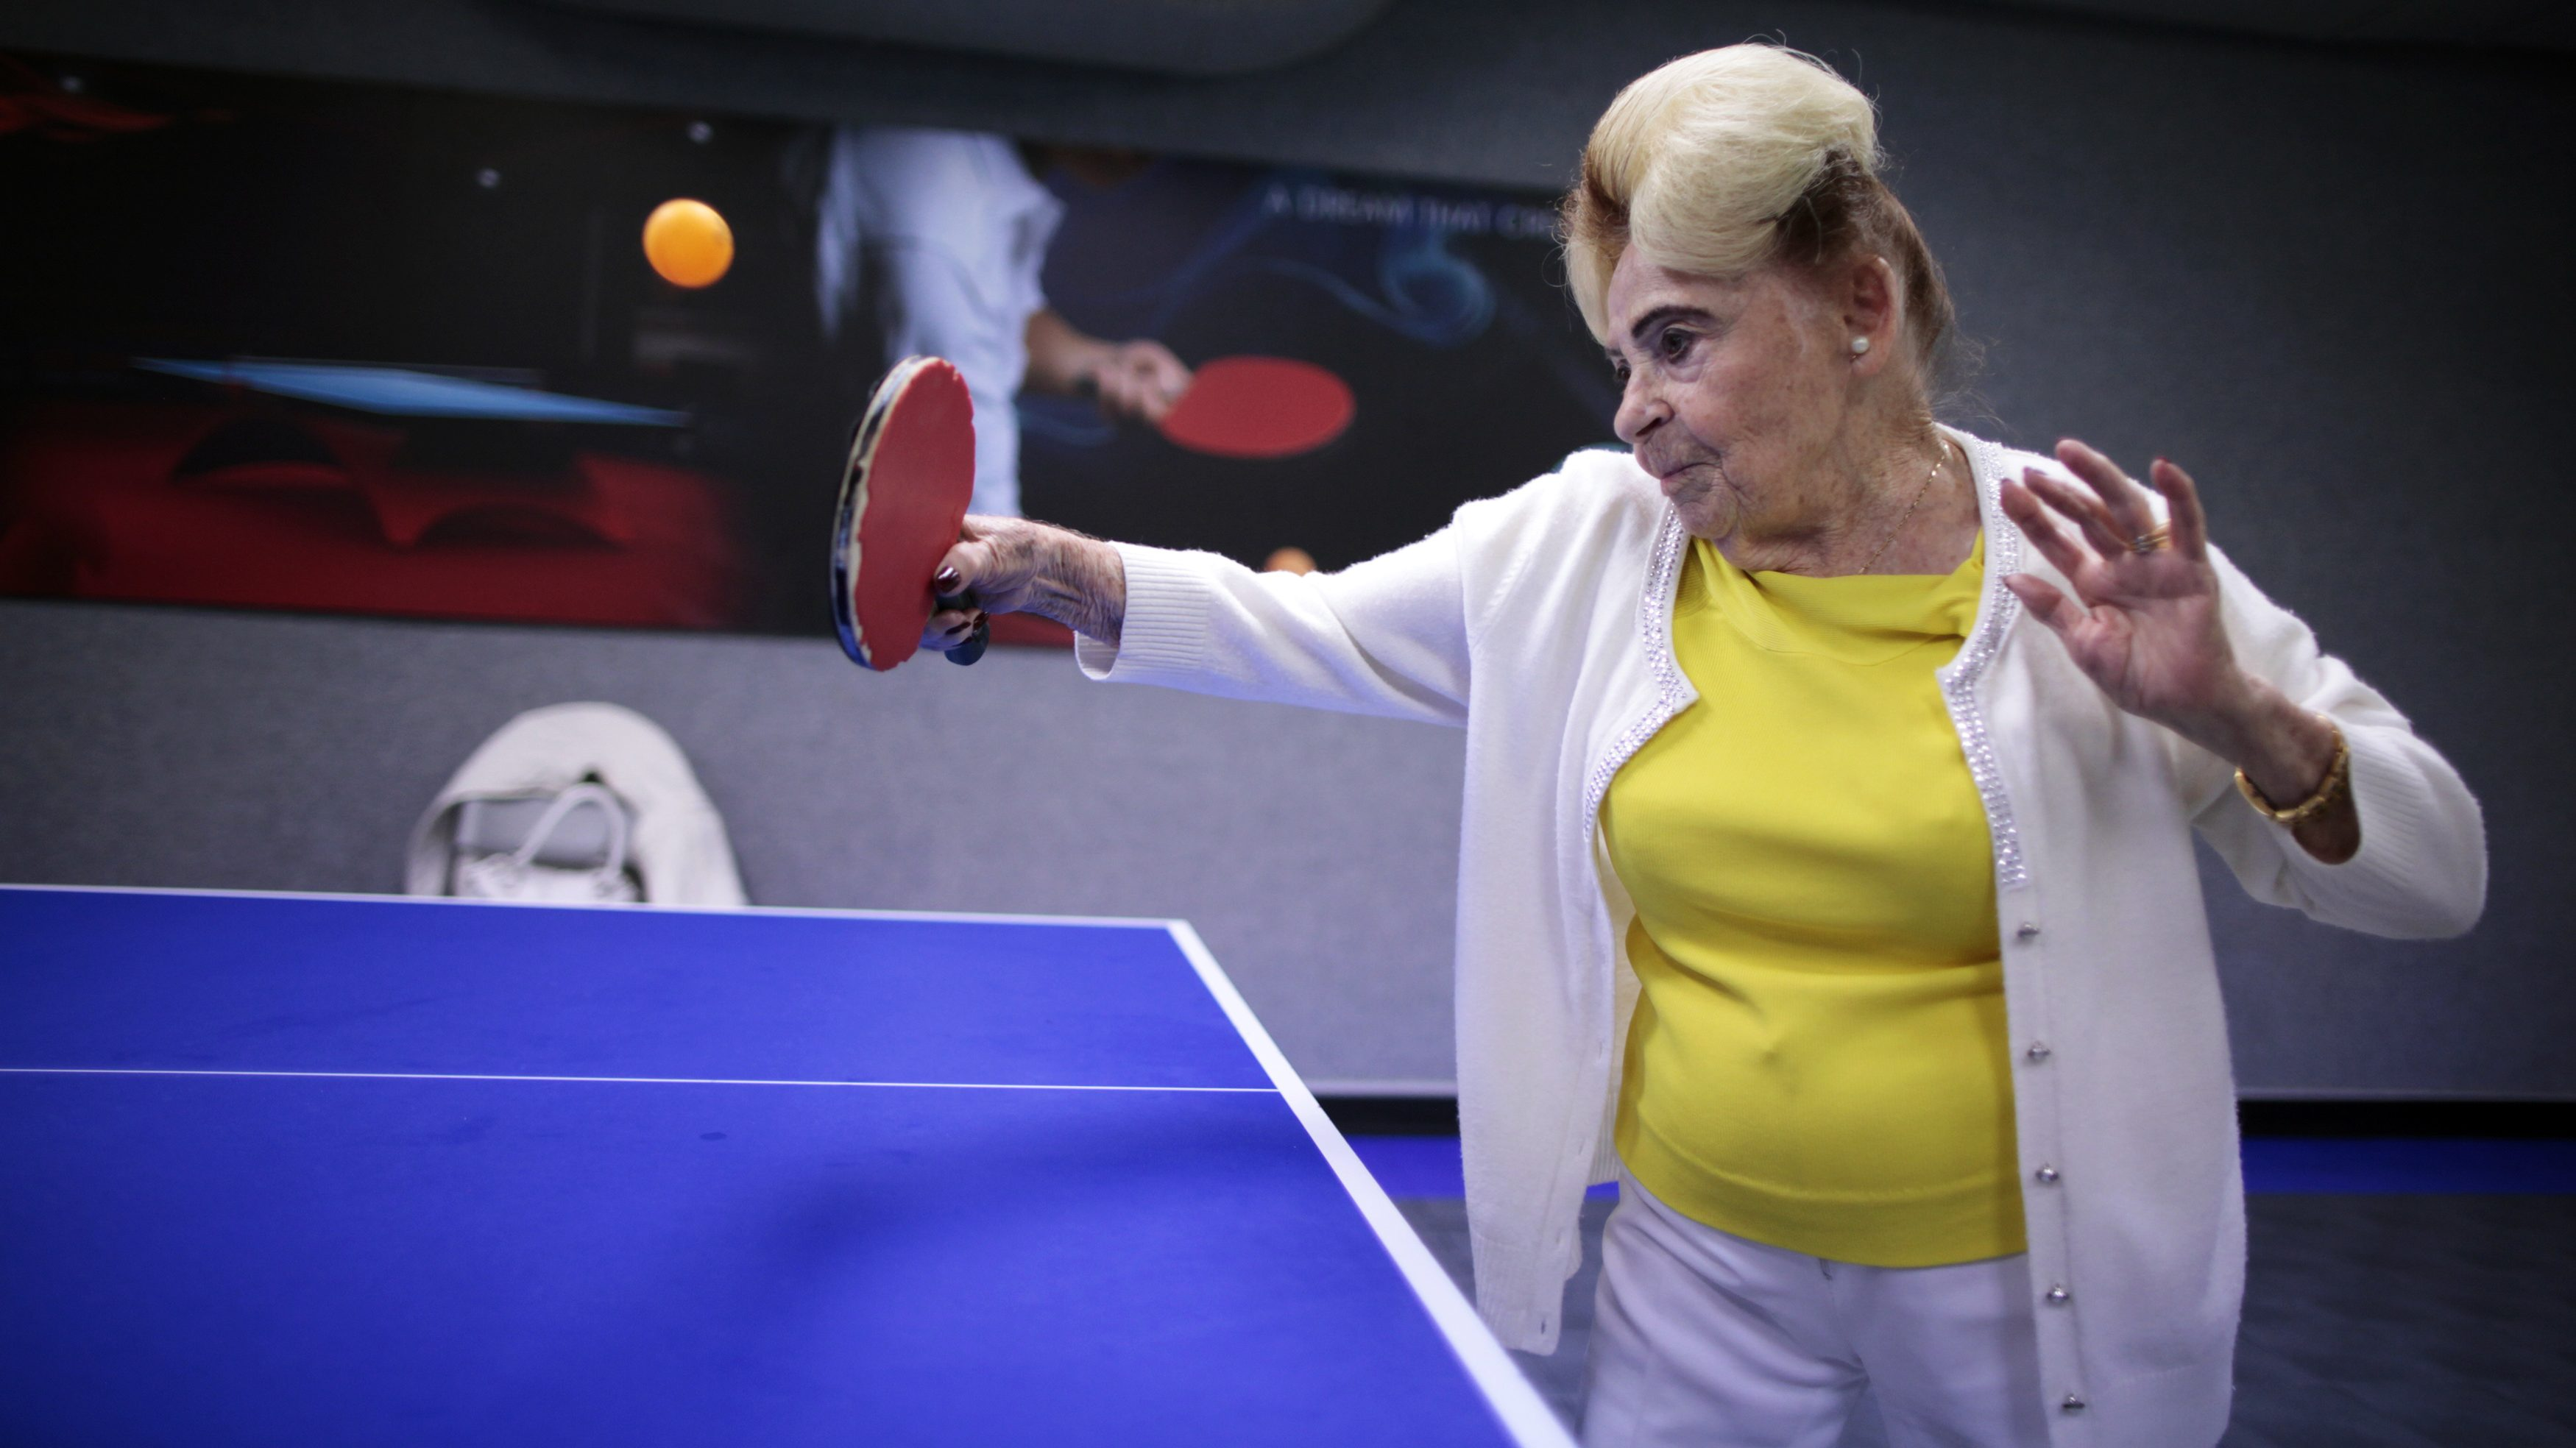 An elderly woman plays pingpong